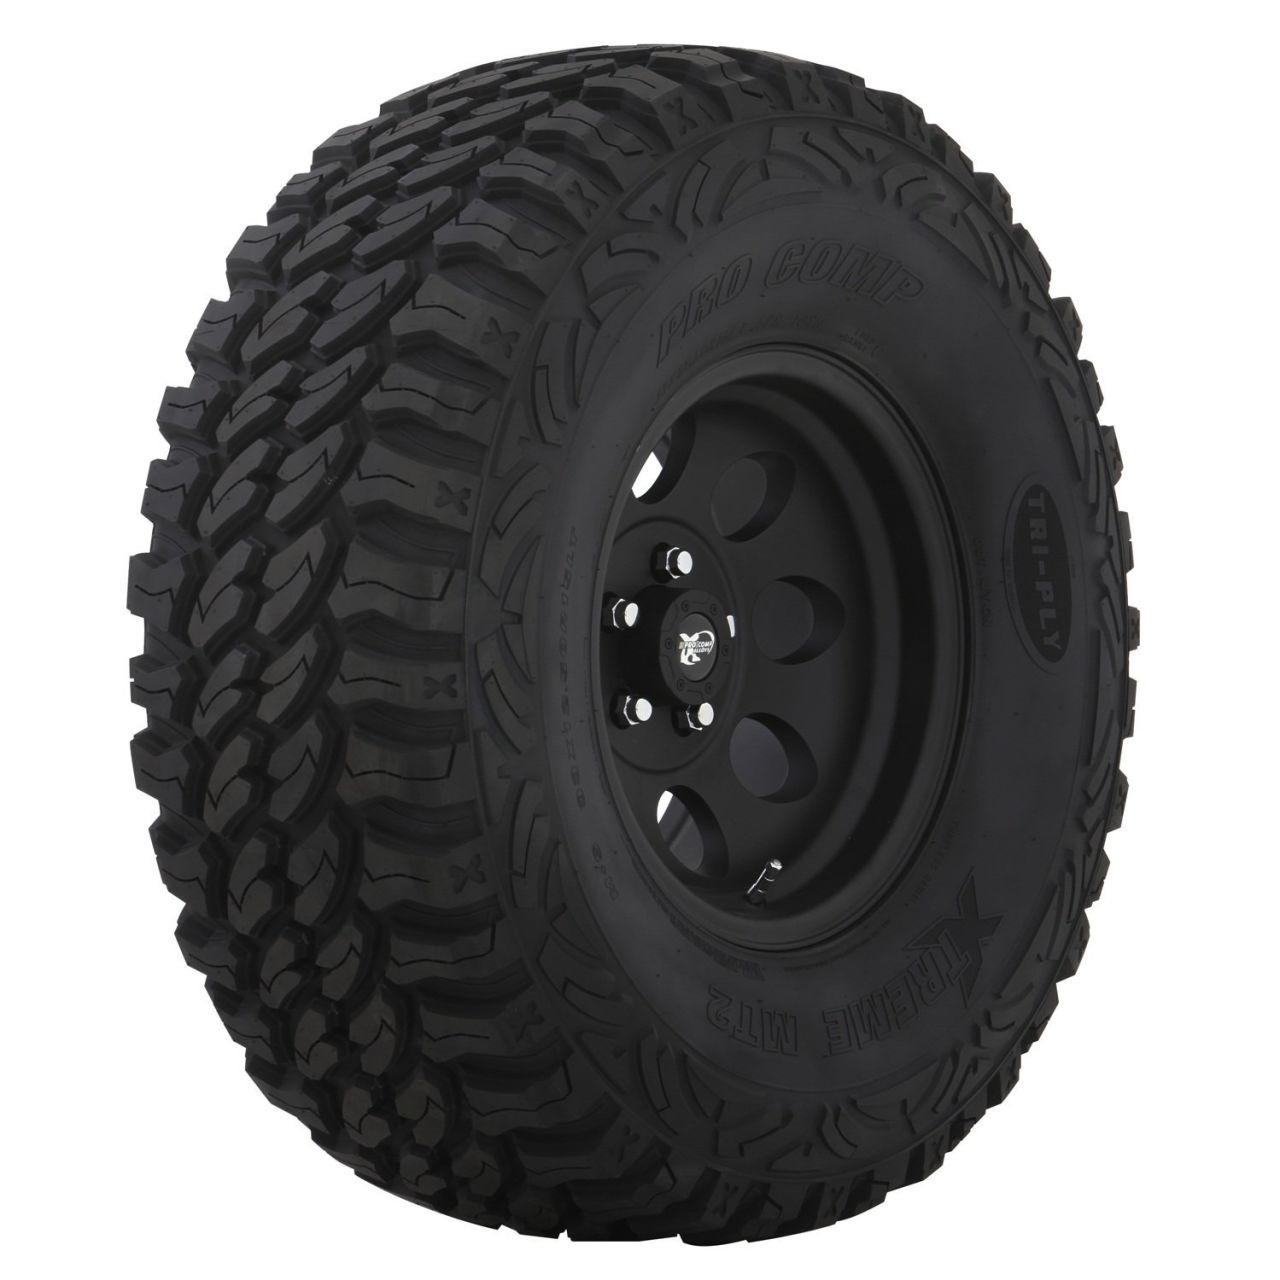 Best Off Road Tires >> The Best Off Road Tires For Your Truck Or Suv